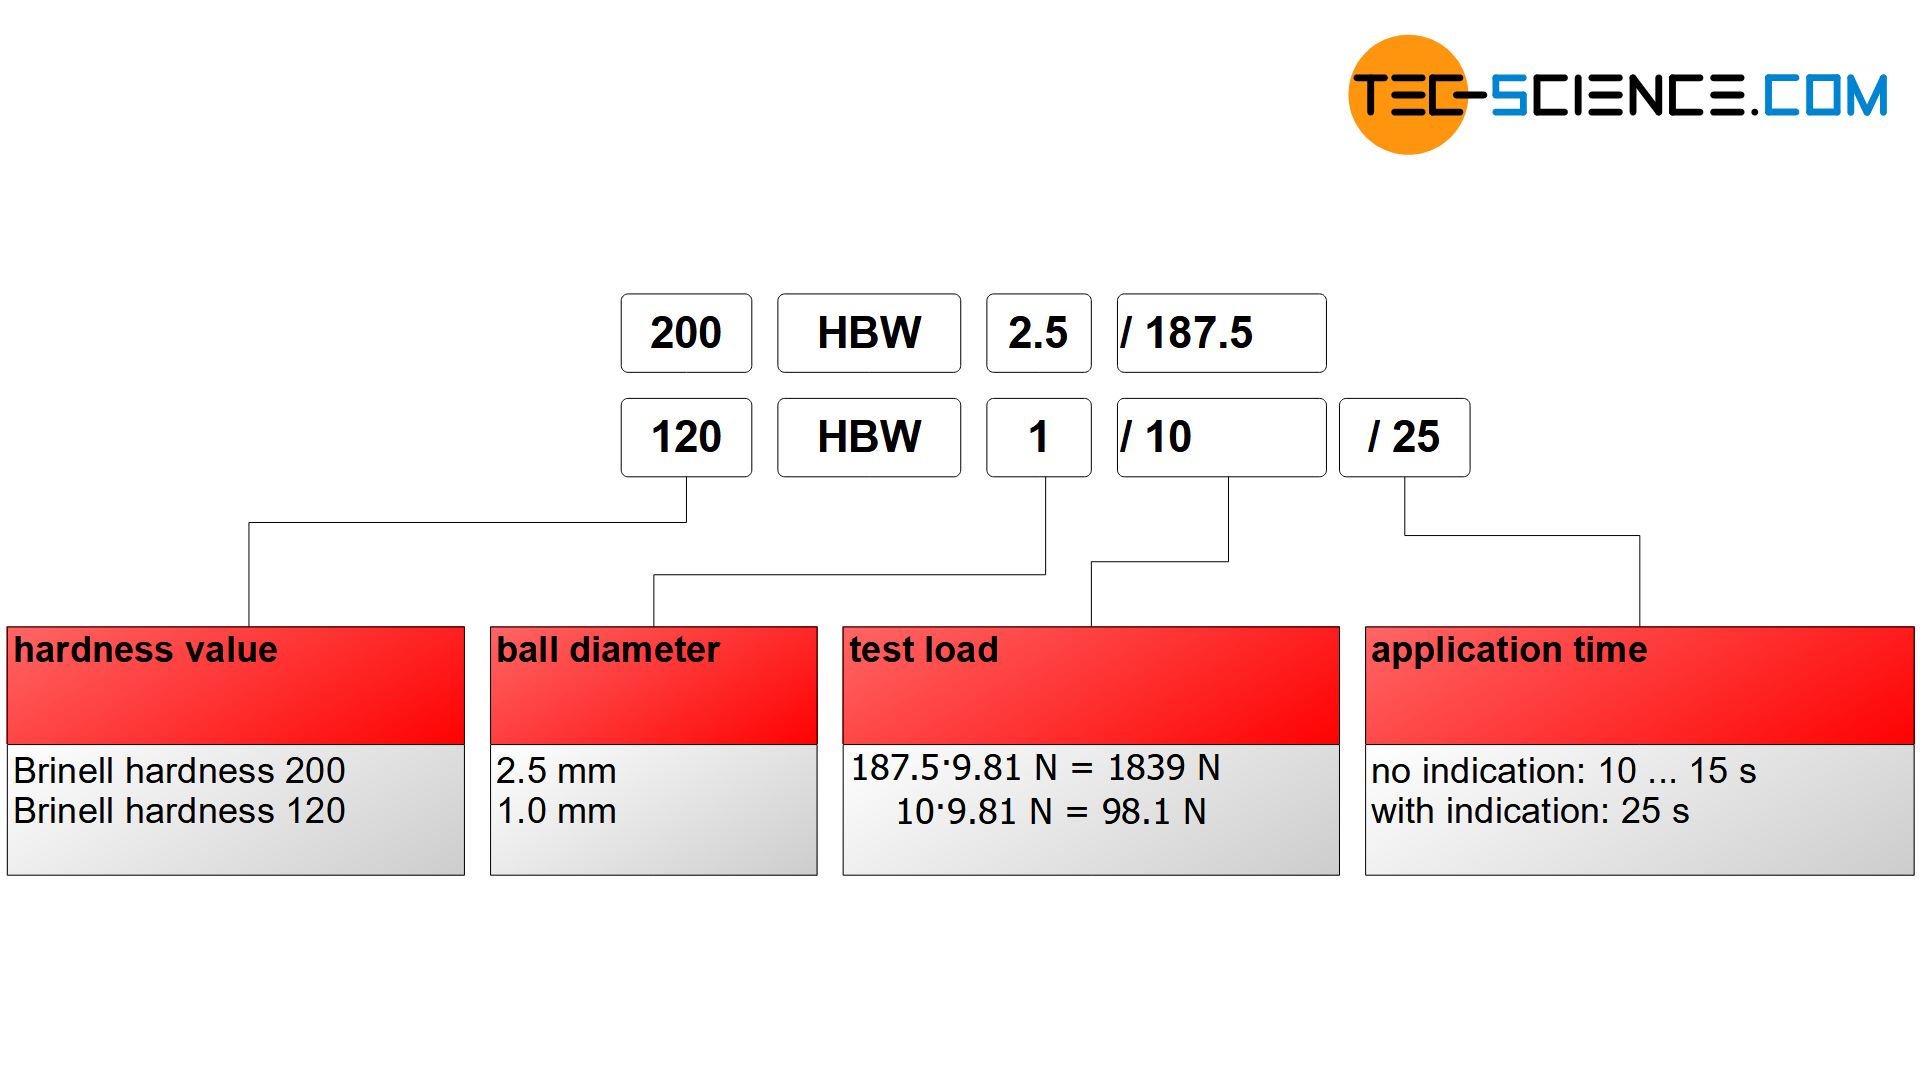 Standard-compliant specification of Brinell hardness value